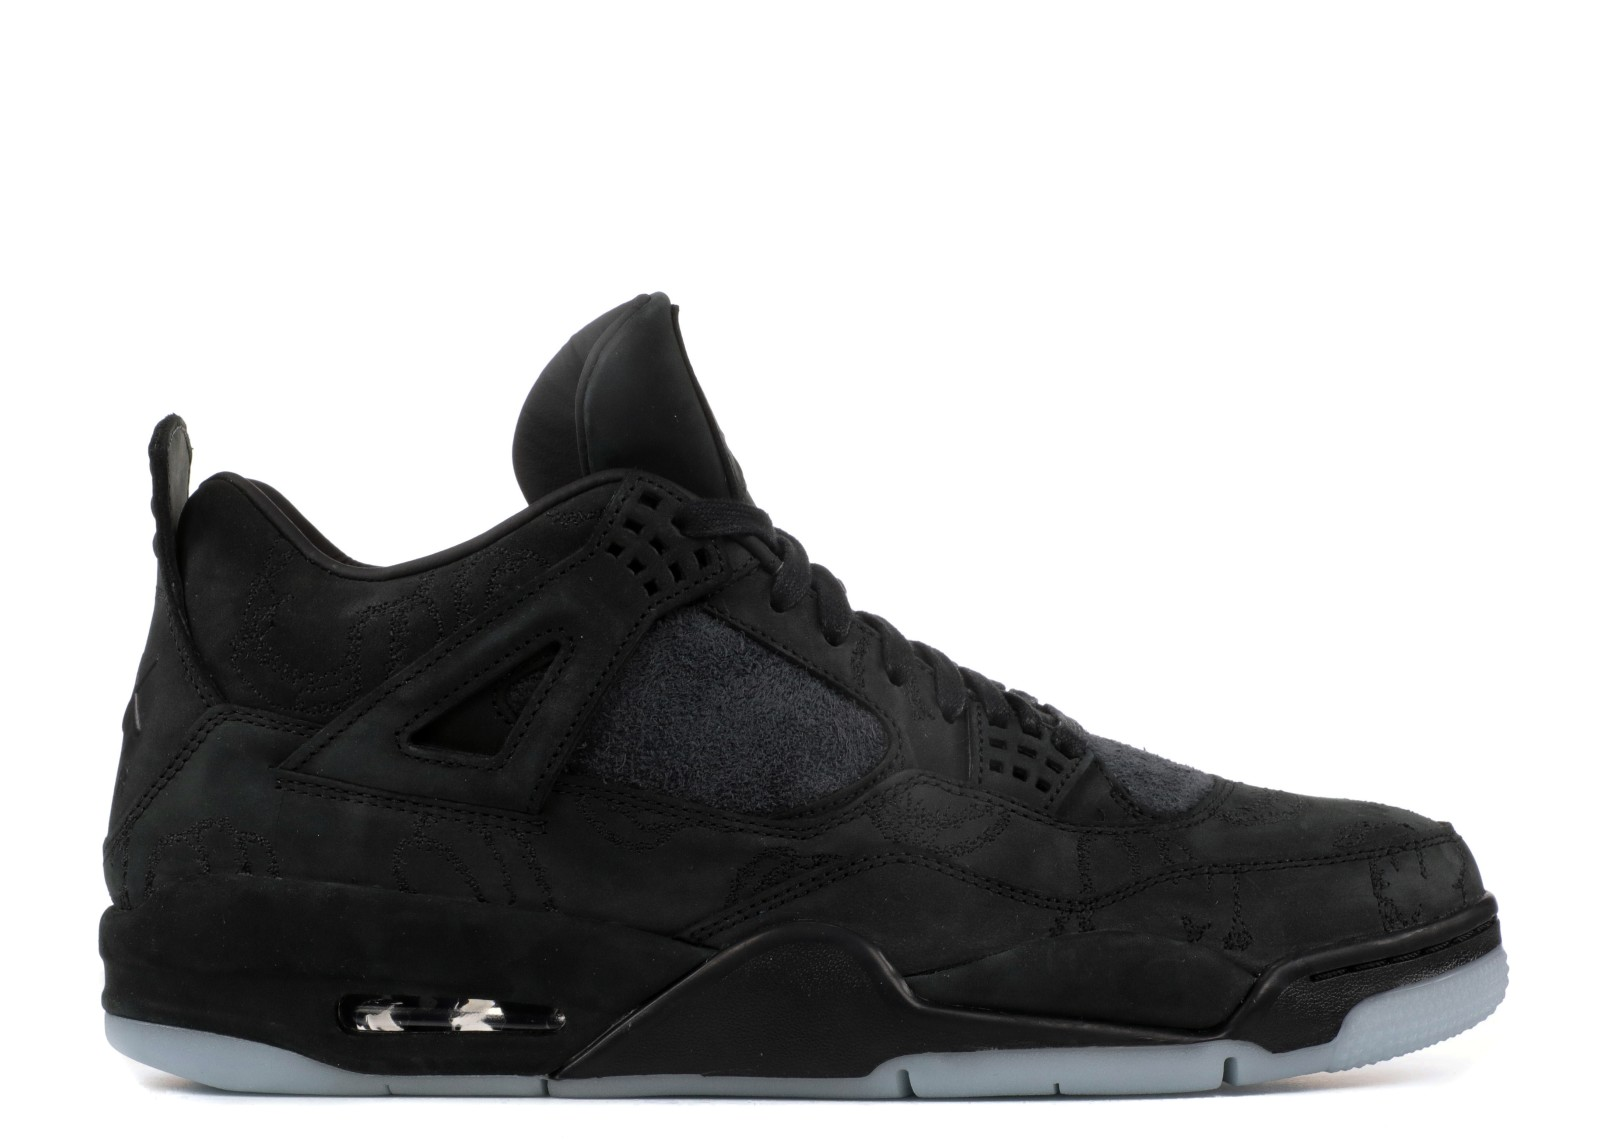 eea7e364b40 Jordan Brand and KAWS will be collaborating once again on an Air Jordan 4  following the grey release a few months back. The Black pair will feature  the same ...